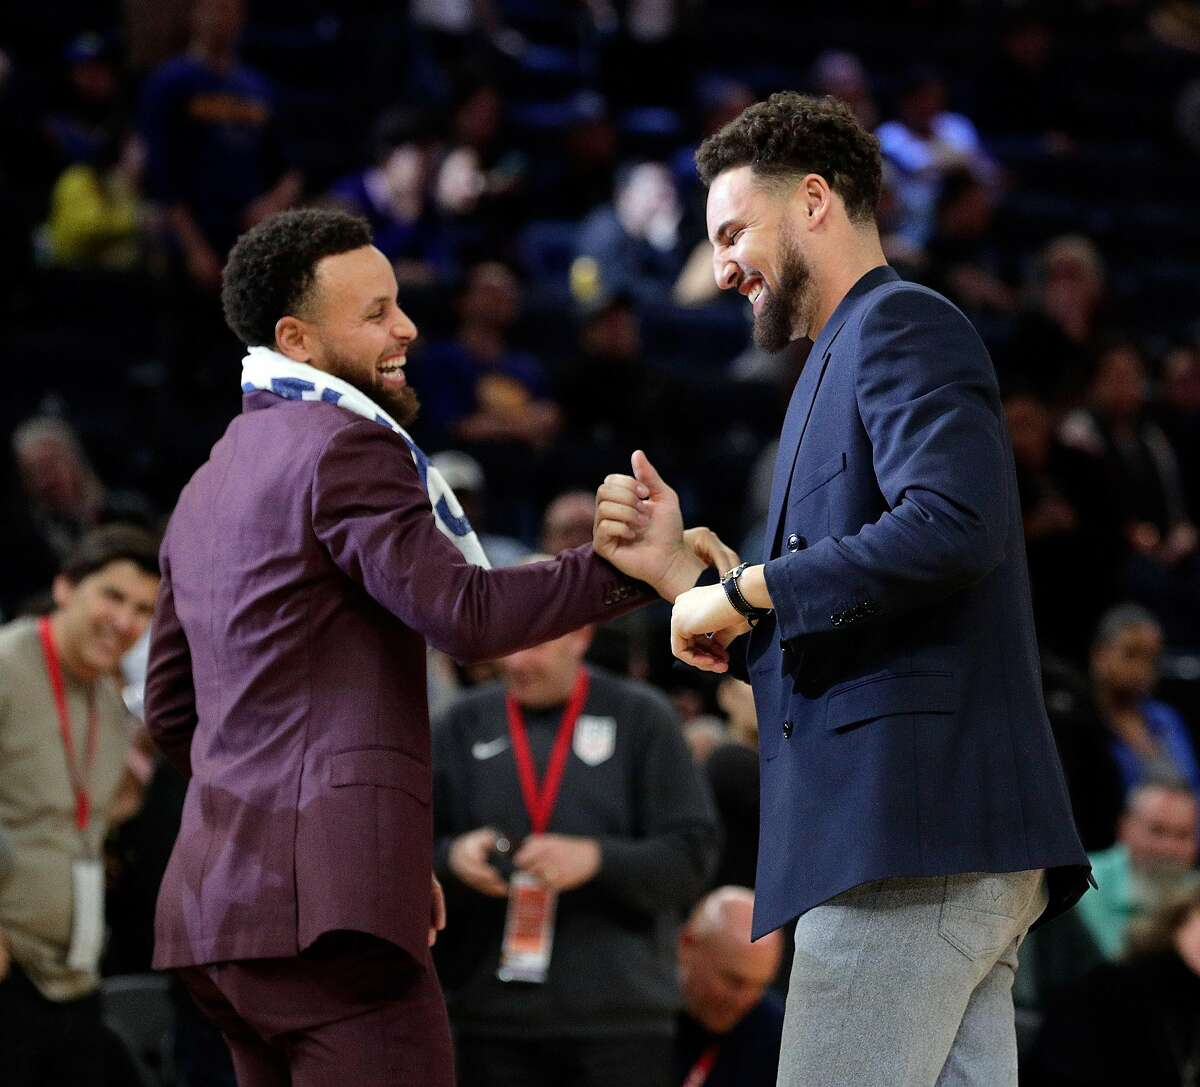 Stephen Curry (30) and Klay Thompson (11) share a laugh during a timeout in overtime as the Golden State Warriors played the Denver Nuggets at Chase Center in San Francisco, Calif., on Thursday, January 16, 2020.